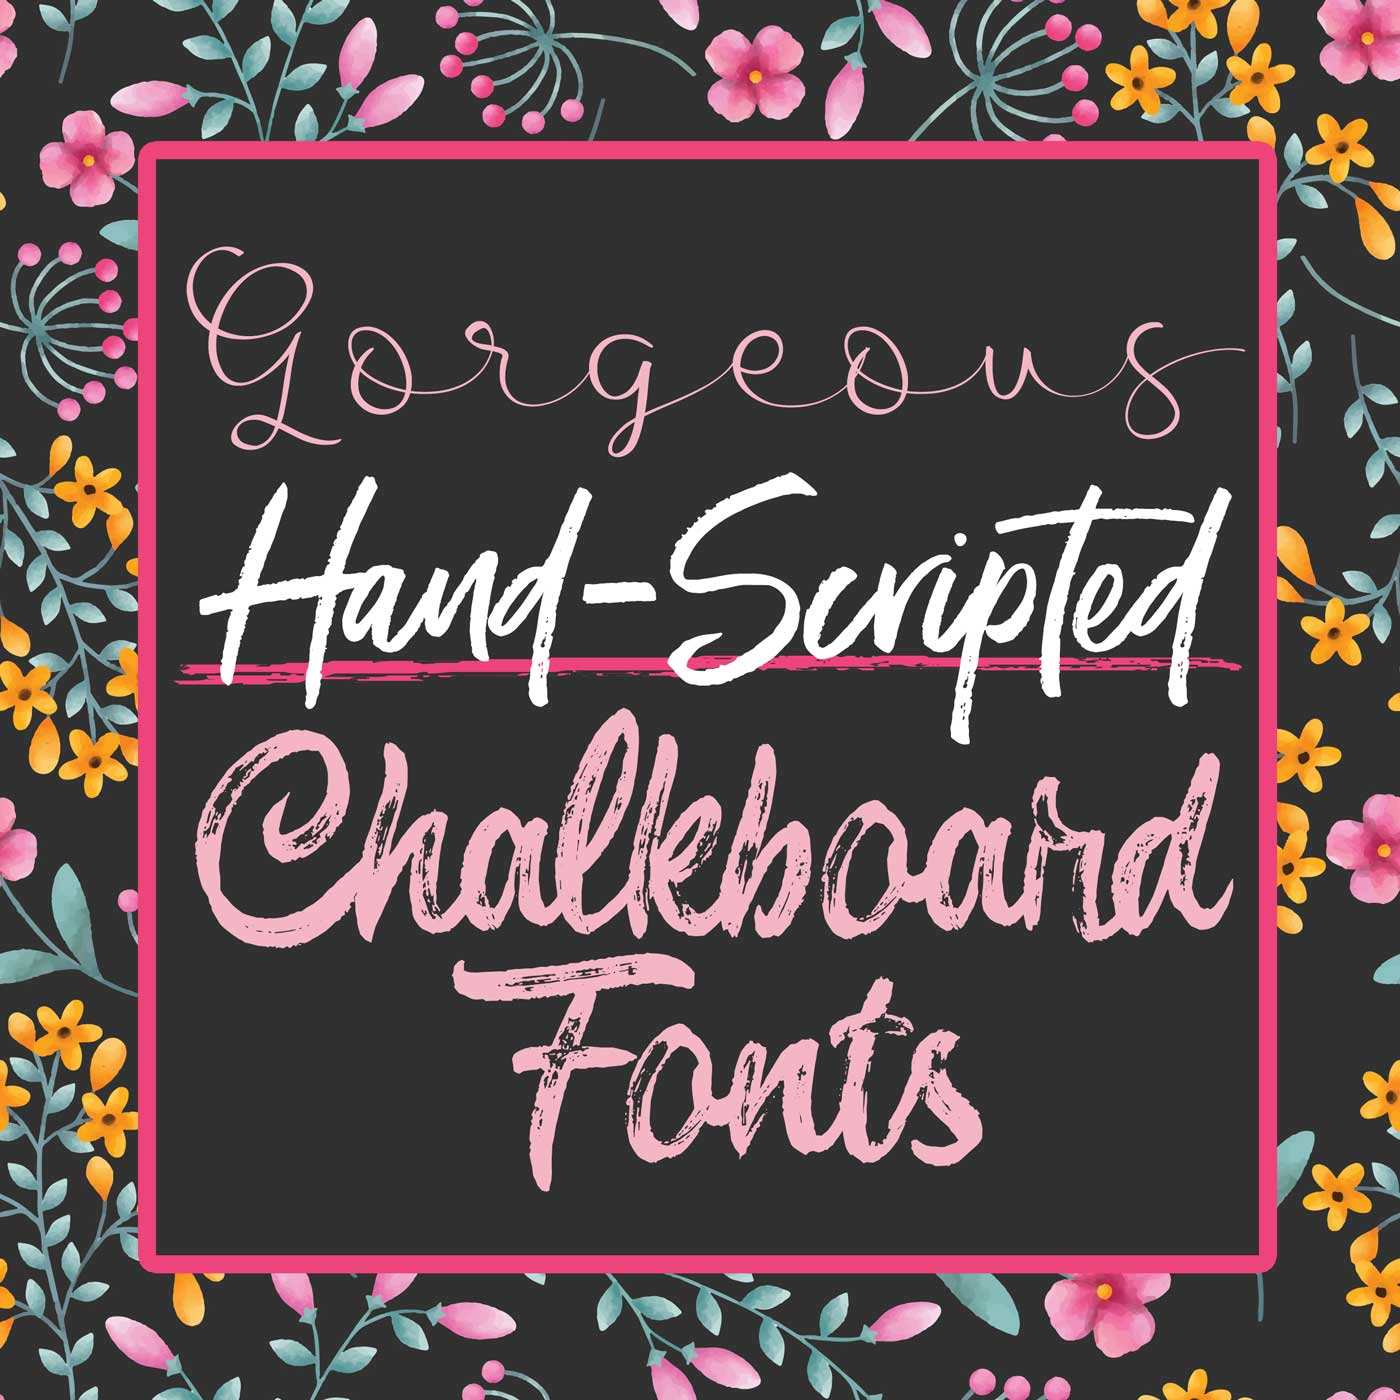 Here's a collection of some GORGEOUS hand-scripted chalkboard fonts! | Where The Smiles Have Been